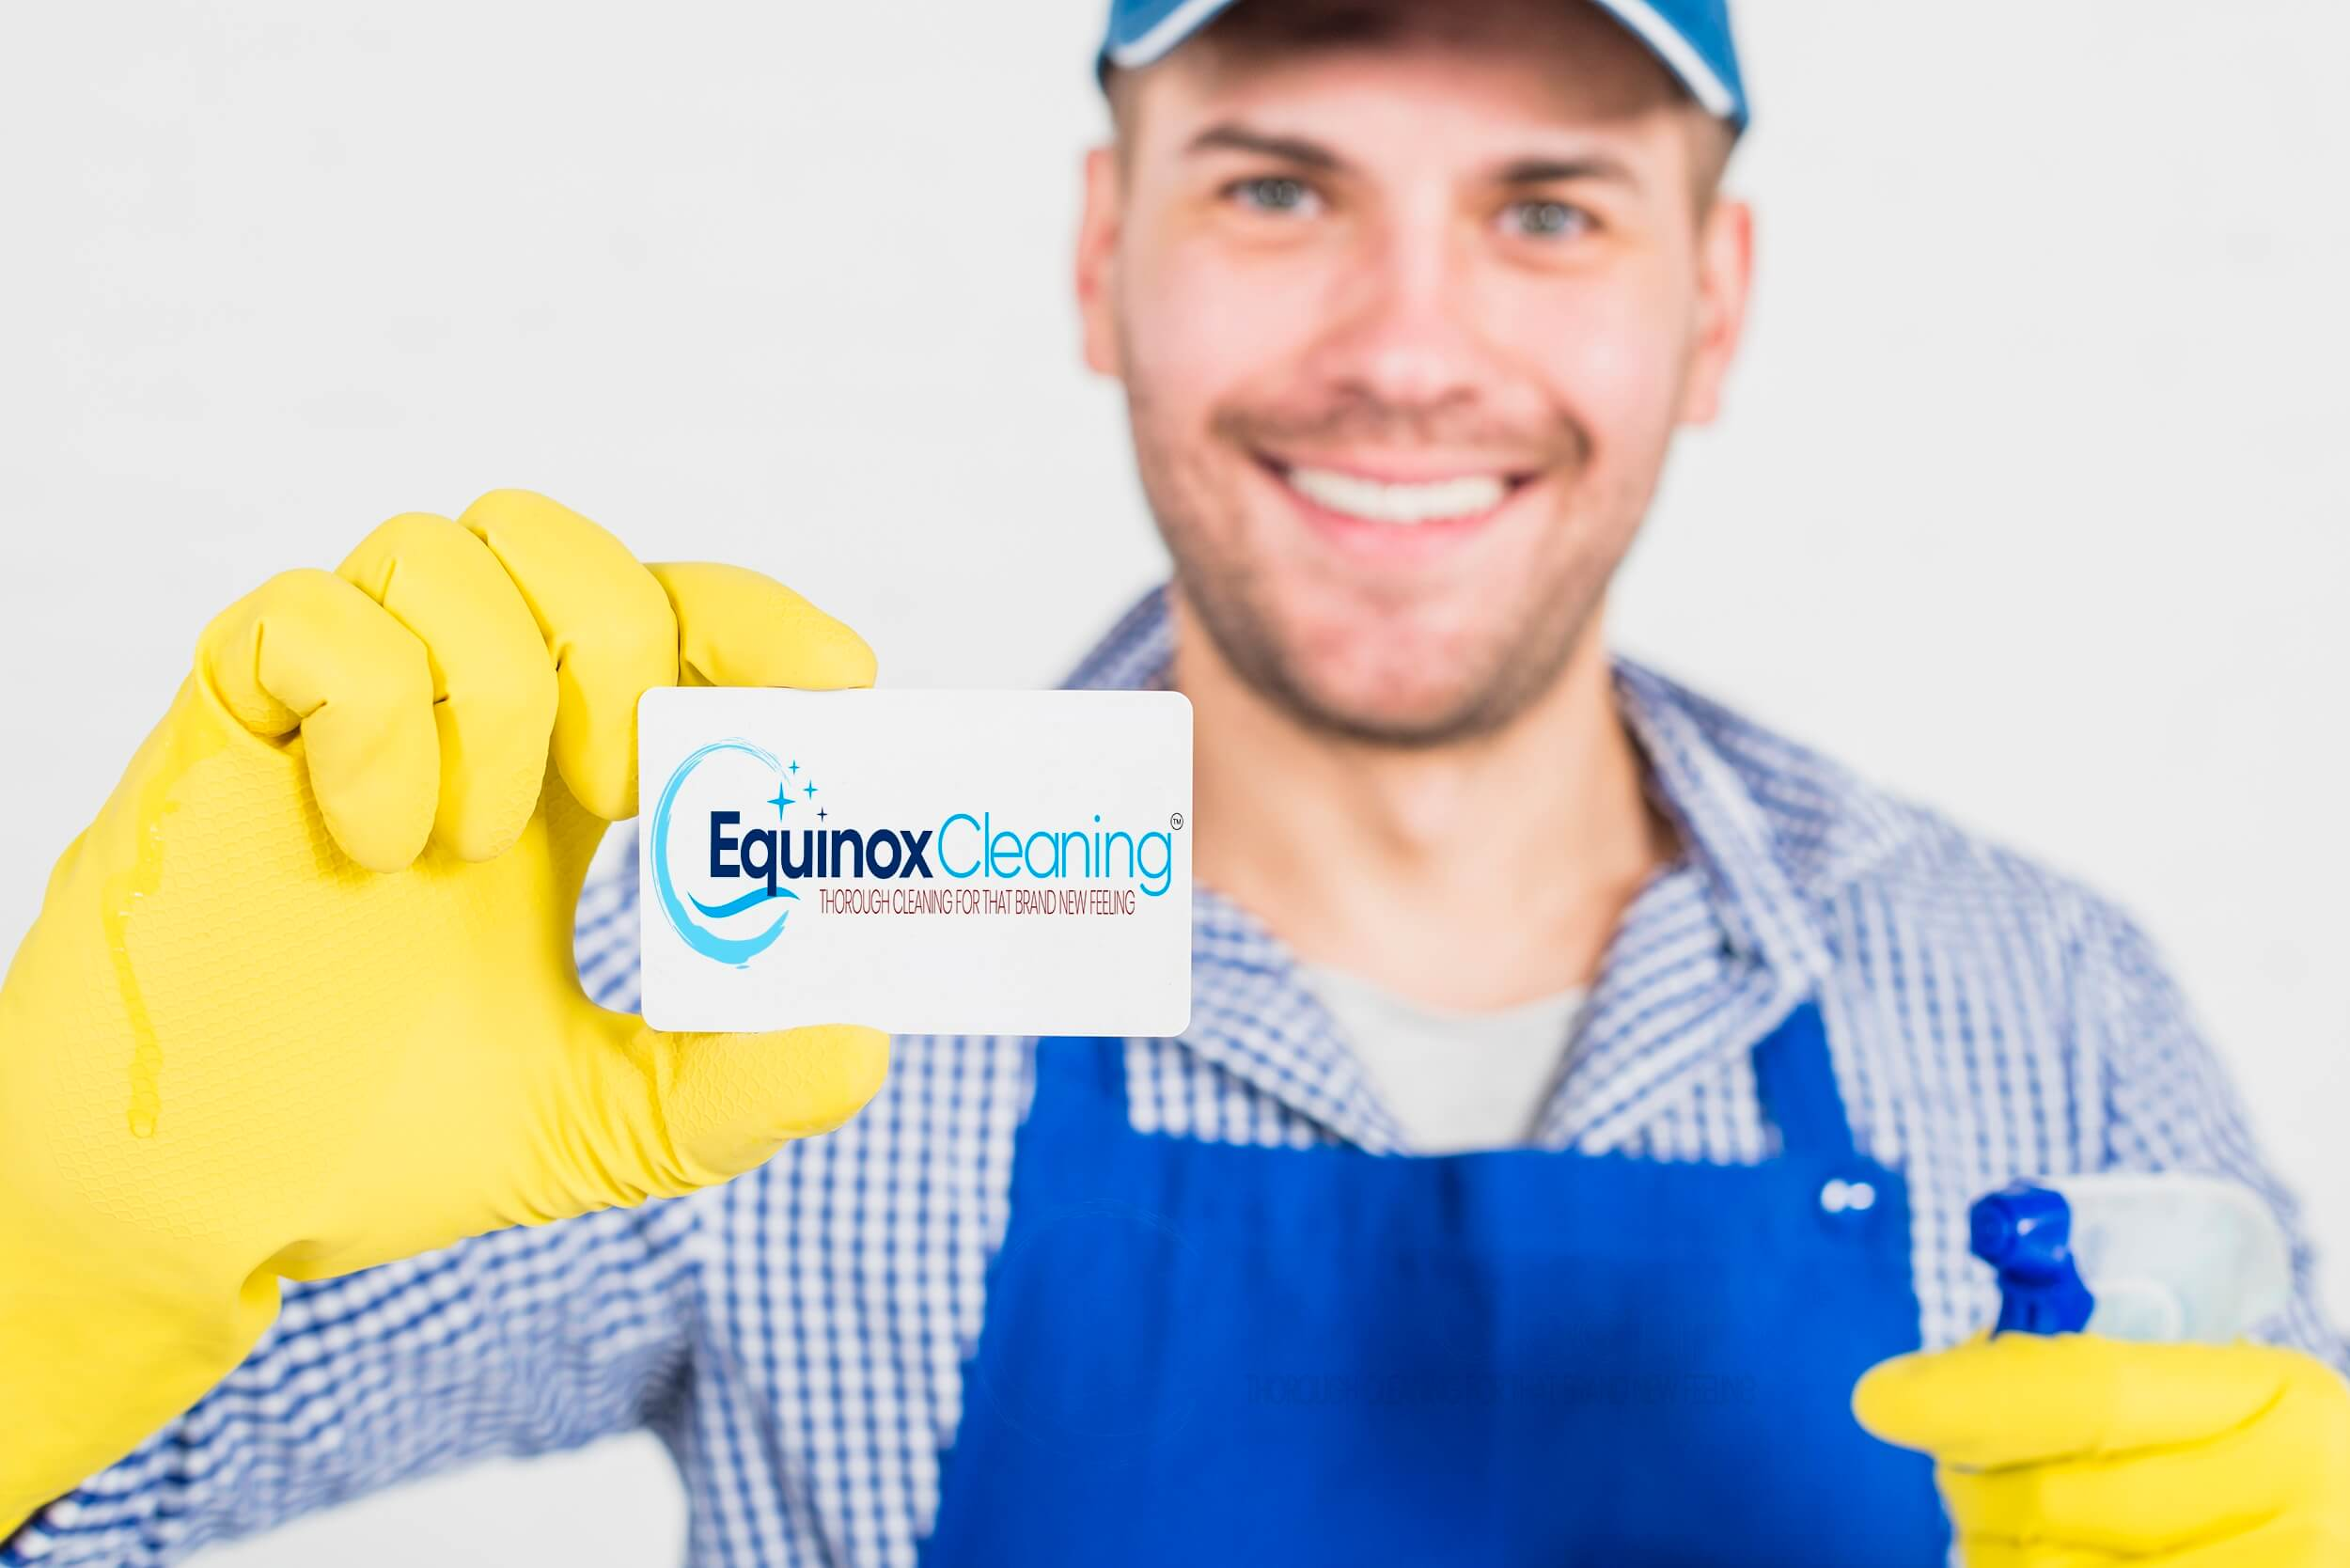 Best House cleaning services in New Jersey - Equinox cleaning